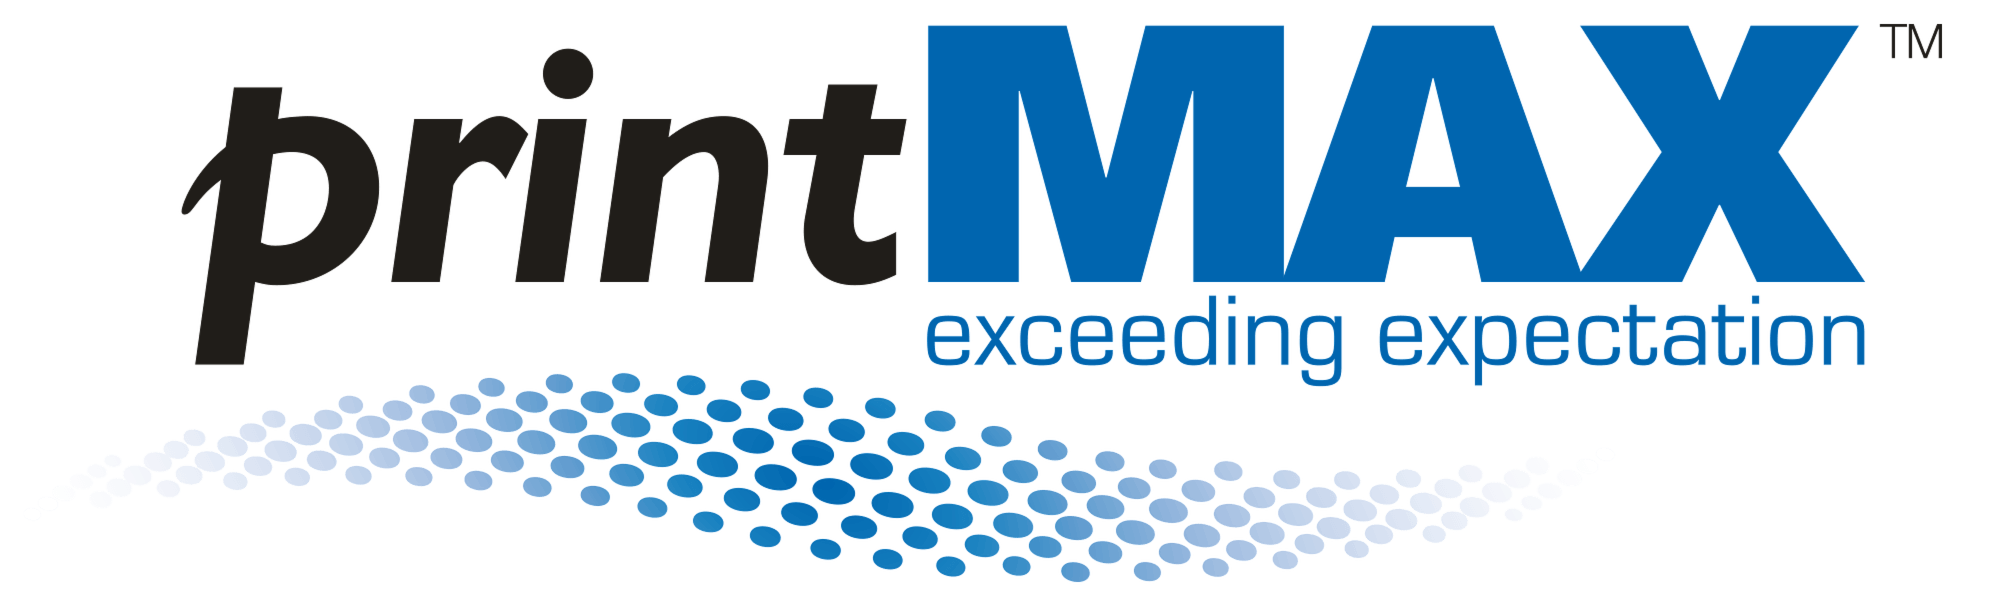 printMAX Ltd